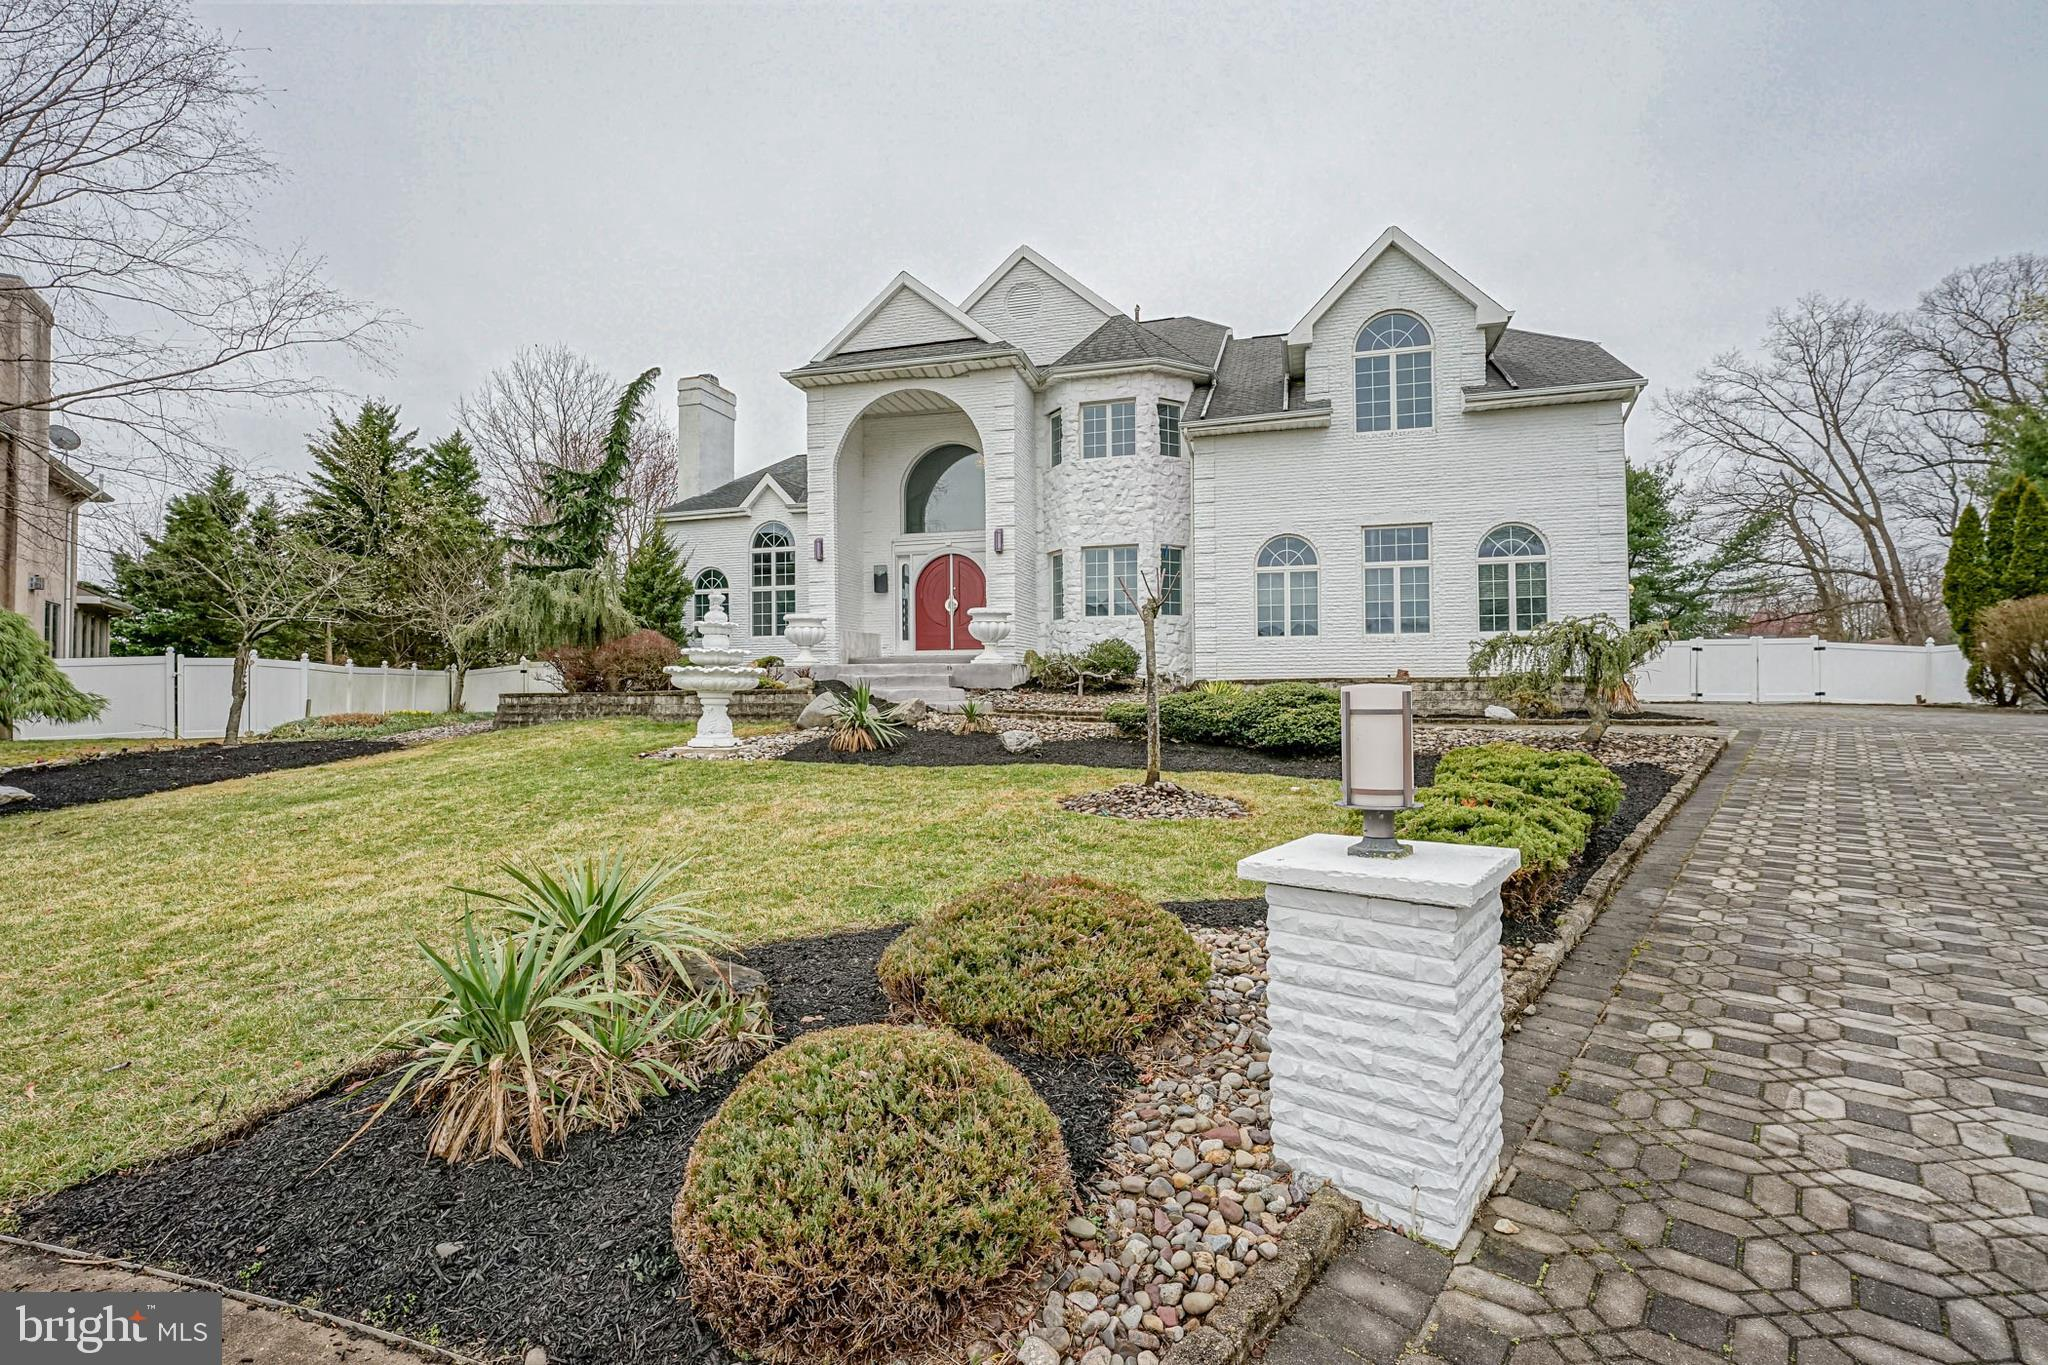 14 CARRIAGE HOUSE COURT, CHERRY HILL, NJ 08003